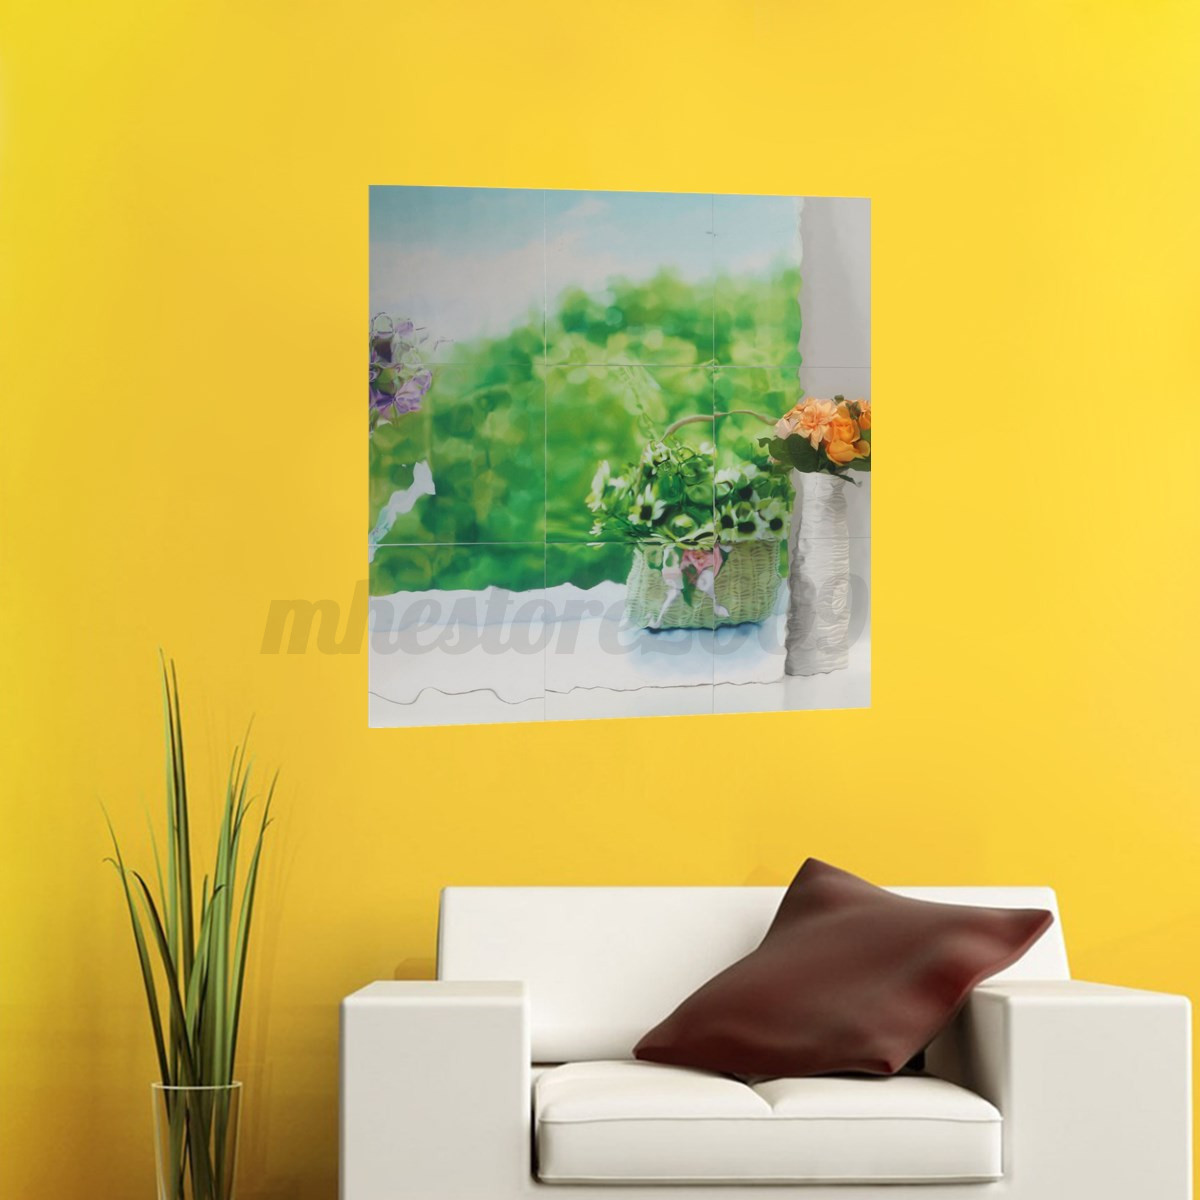 This can be achieved through self-adhesive wall murals. Try opening up to the possibilities provided by technology and experience a total lack of limits! Greenery - self-adhesive Pixerstick wall mural.